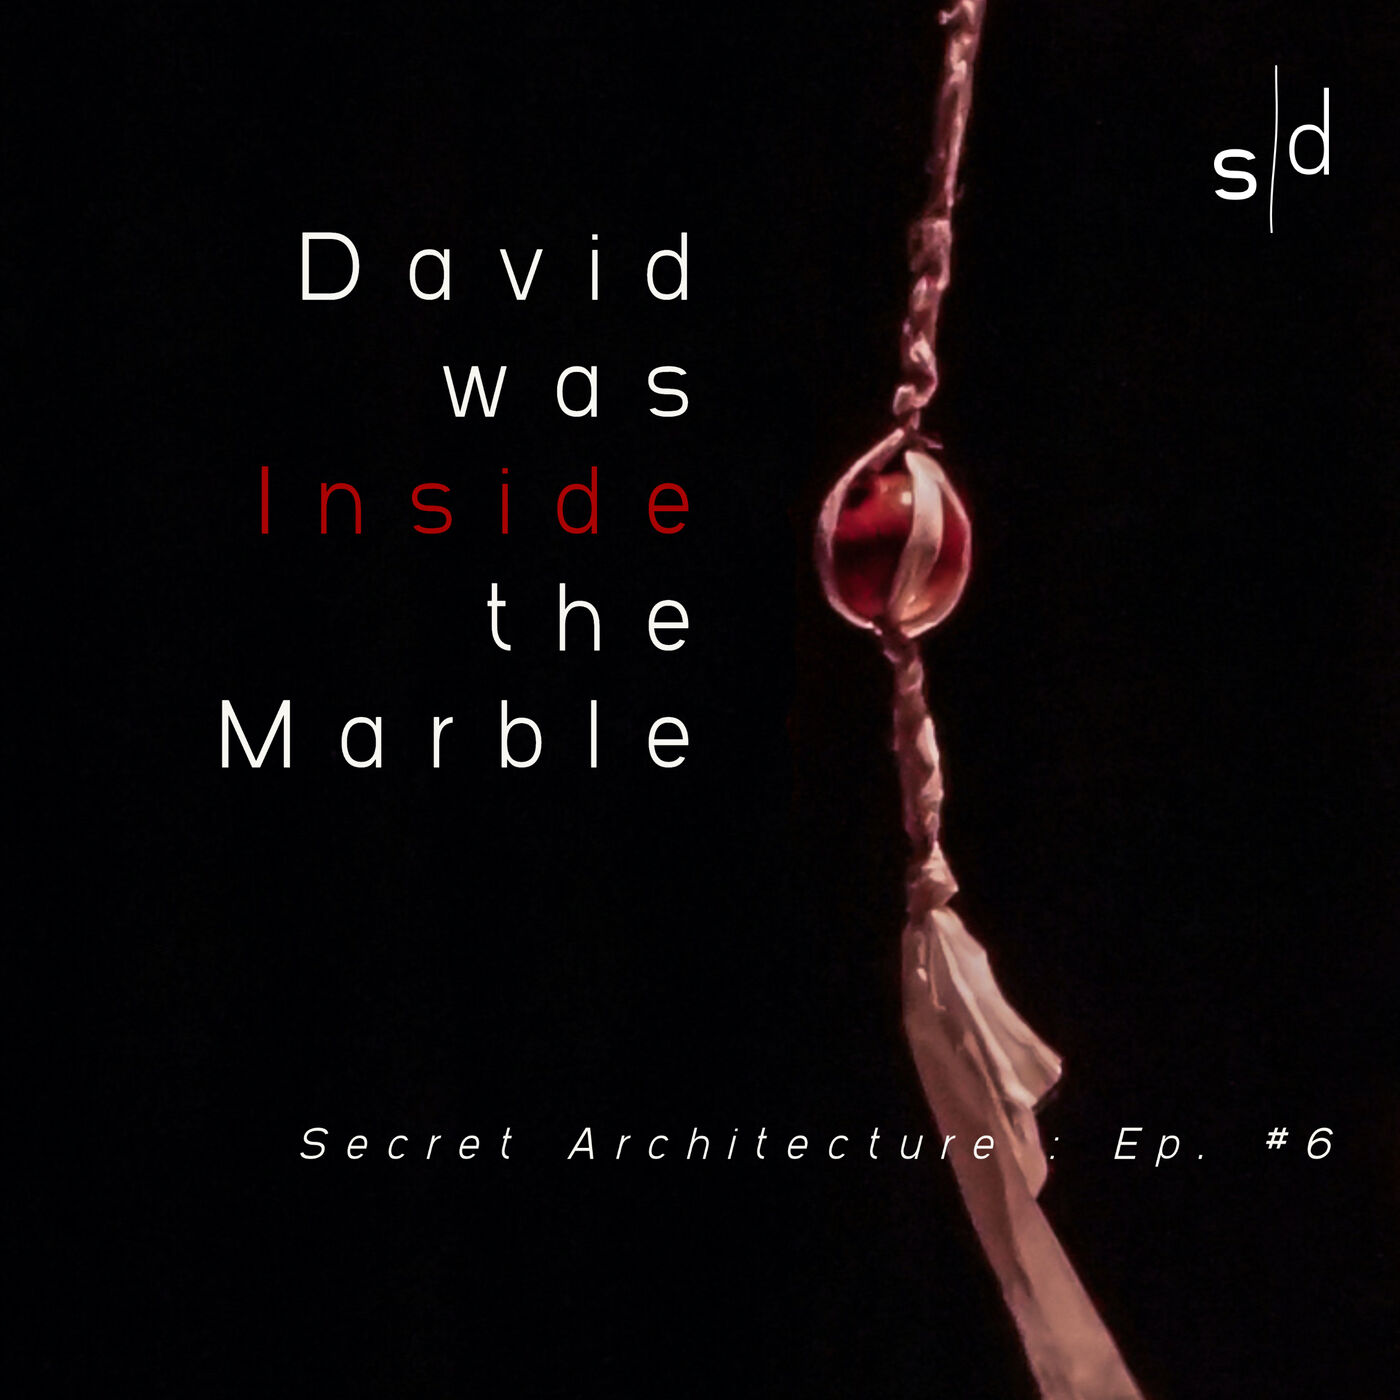 David was Inside the Marble